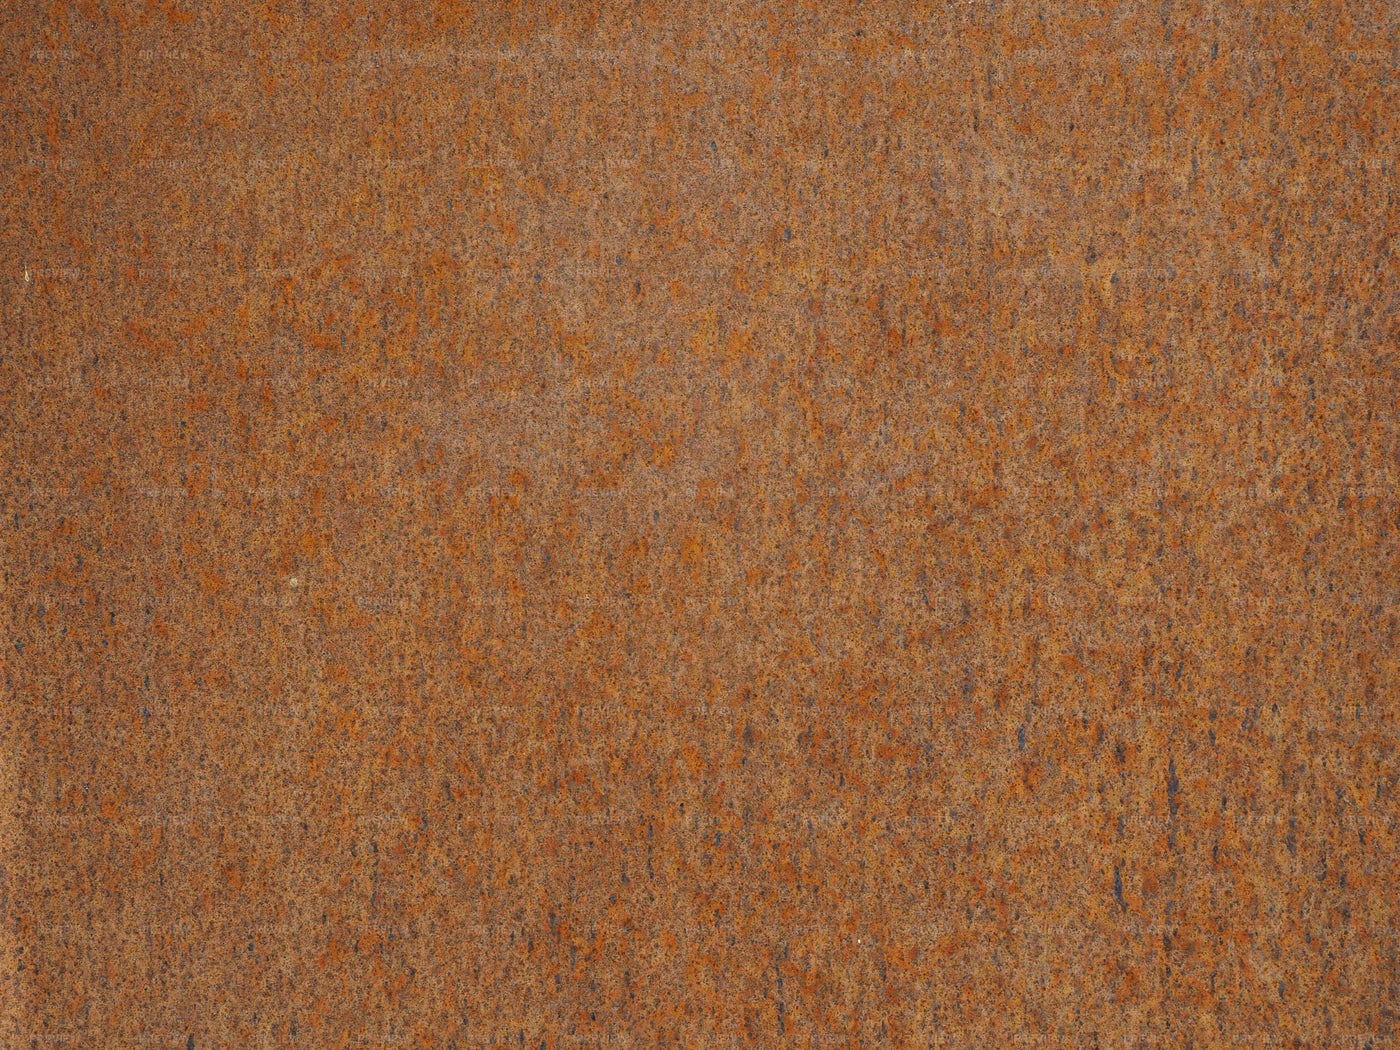 Rusted Steel Background: Stock Photos